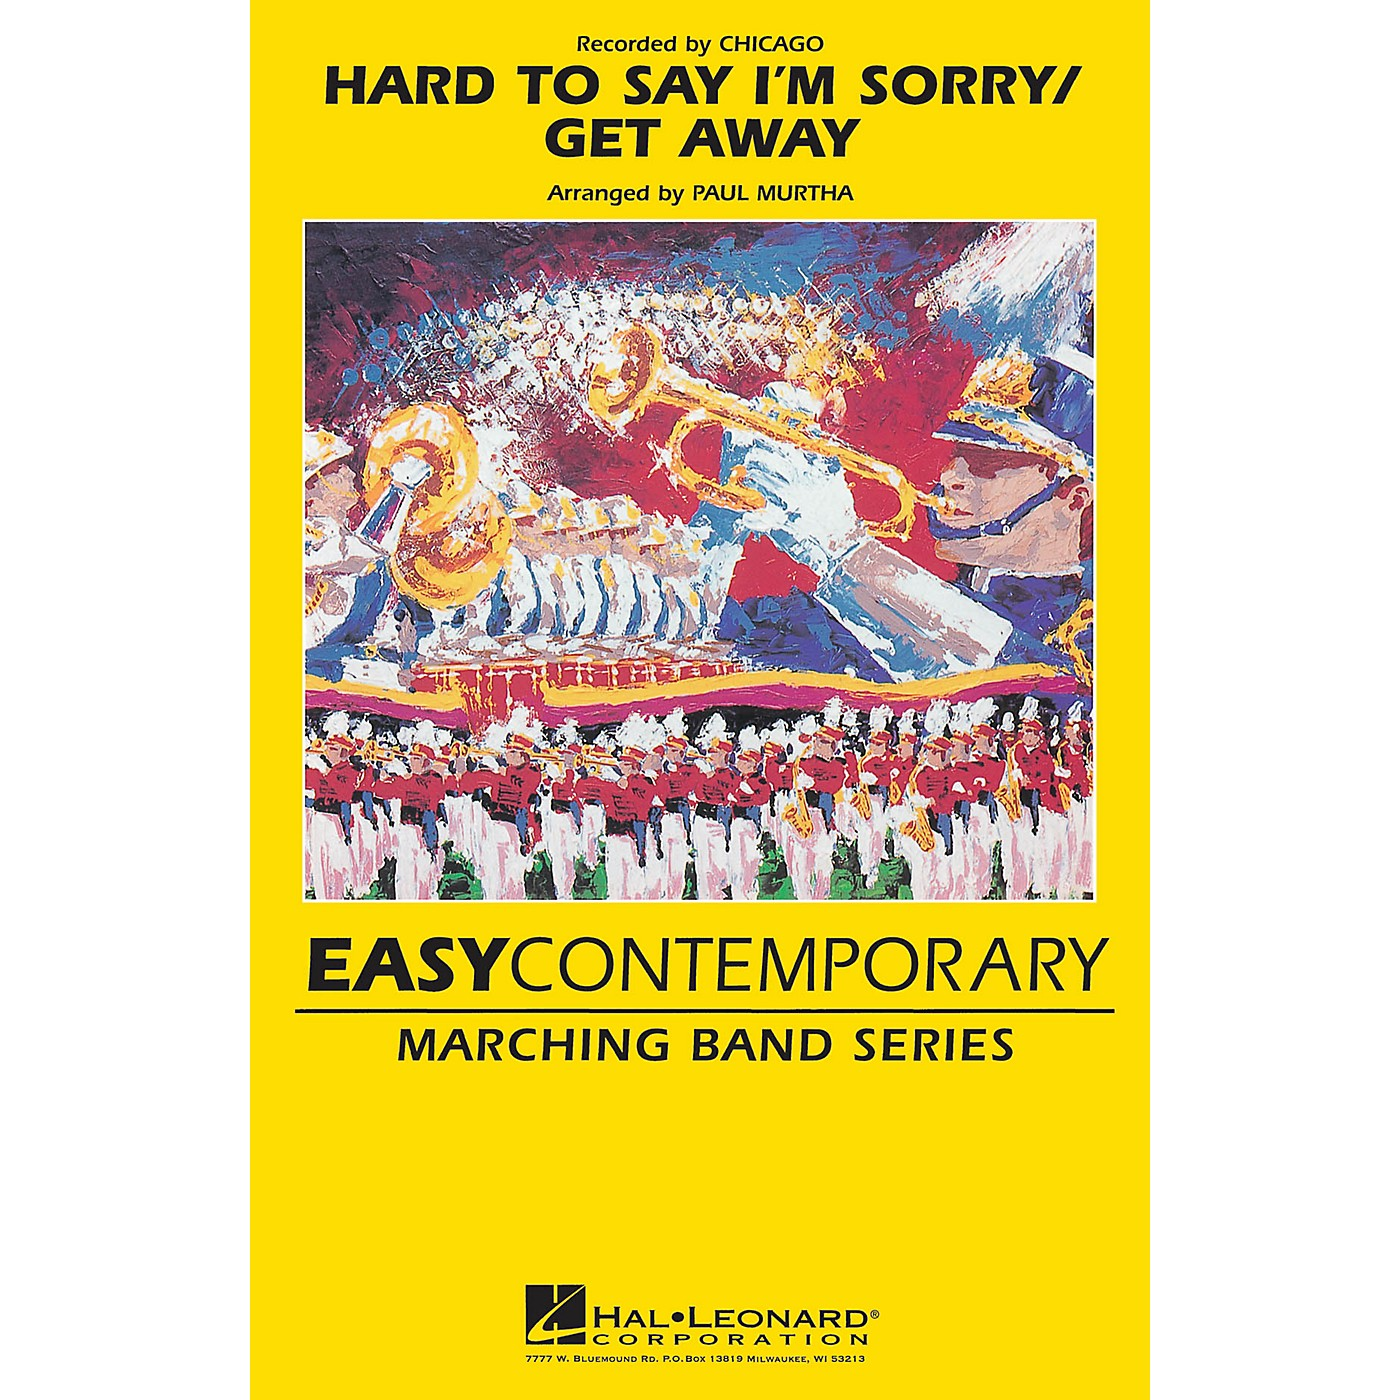 Hal Leonard Hard to Say I'm Sorry/Get Away Marching Band Level 2-3 by Chicago Arranged by Paul Murtha thumbnail